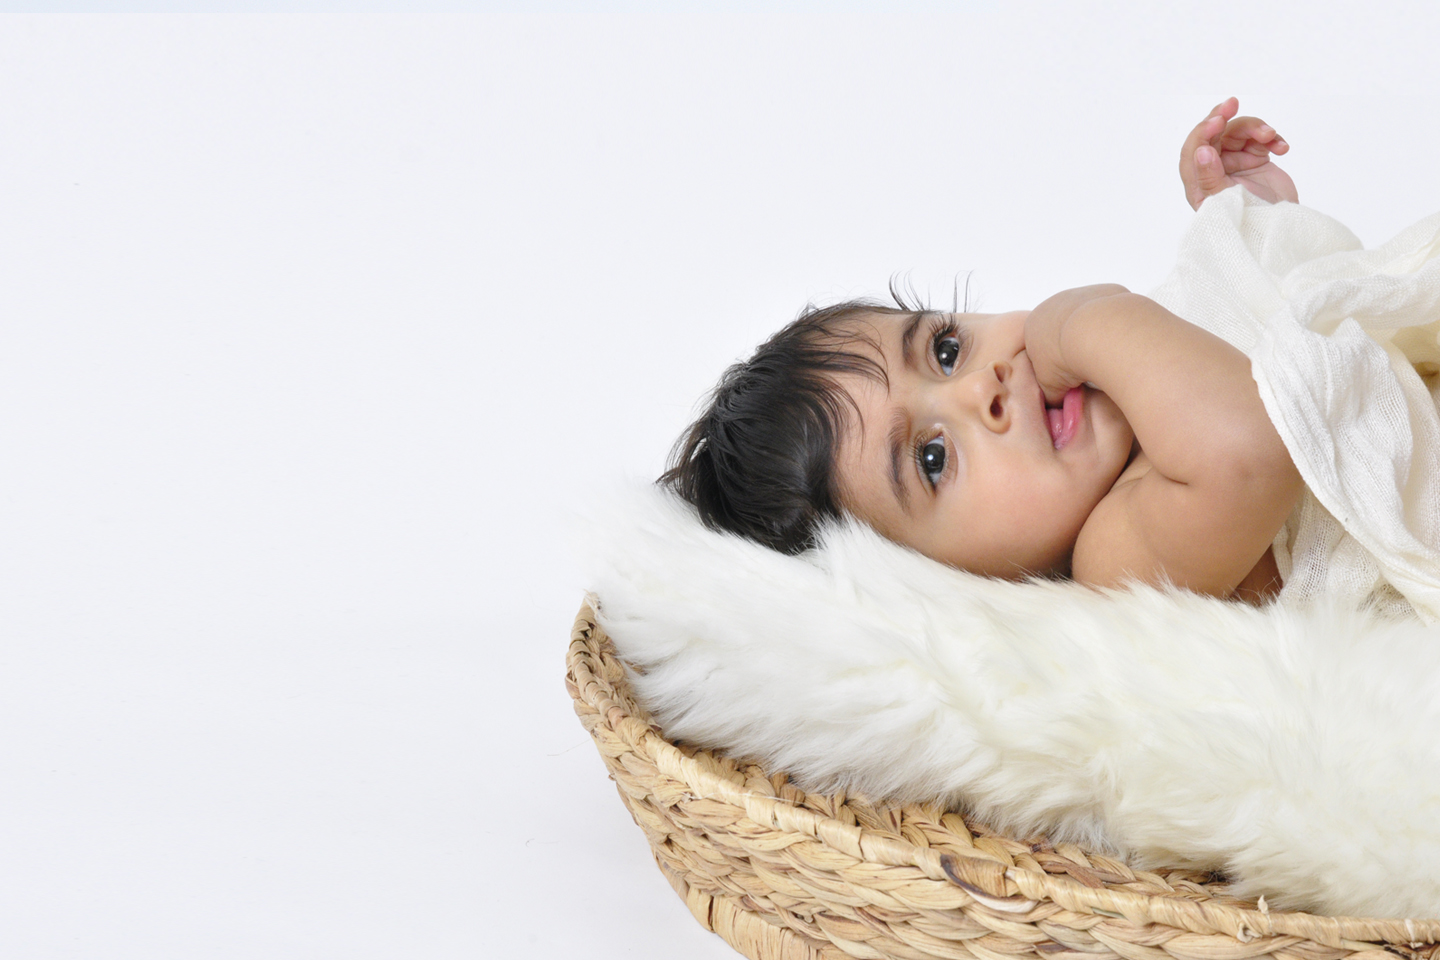 Baby and Newborn Photography in Melbourne - Arush Baby photo 3